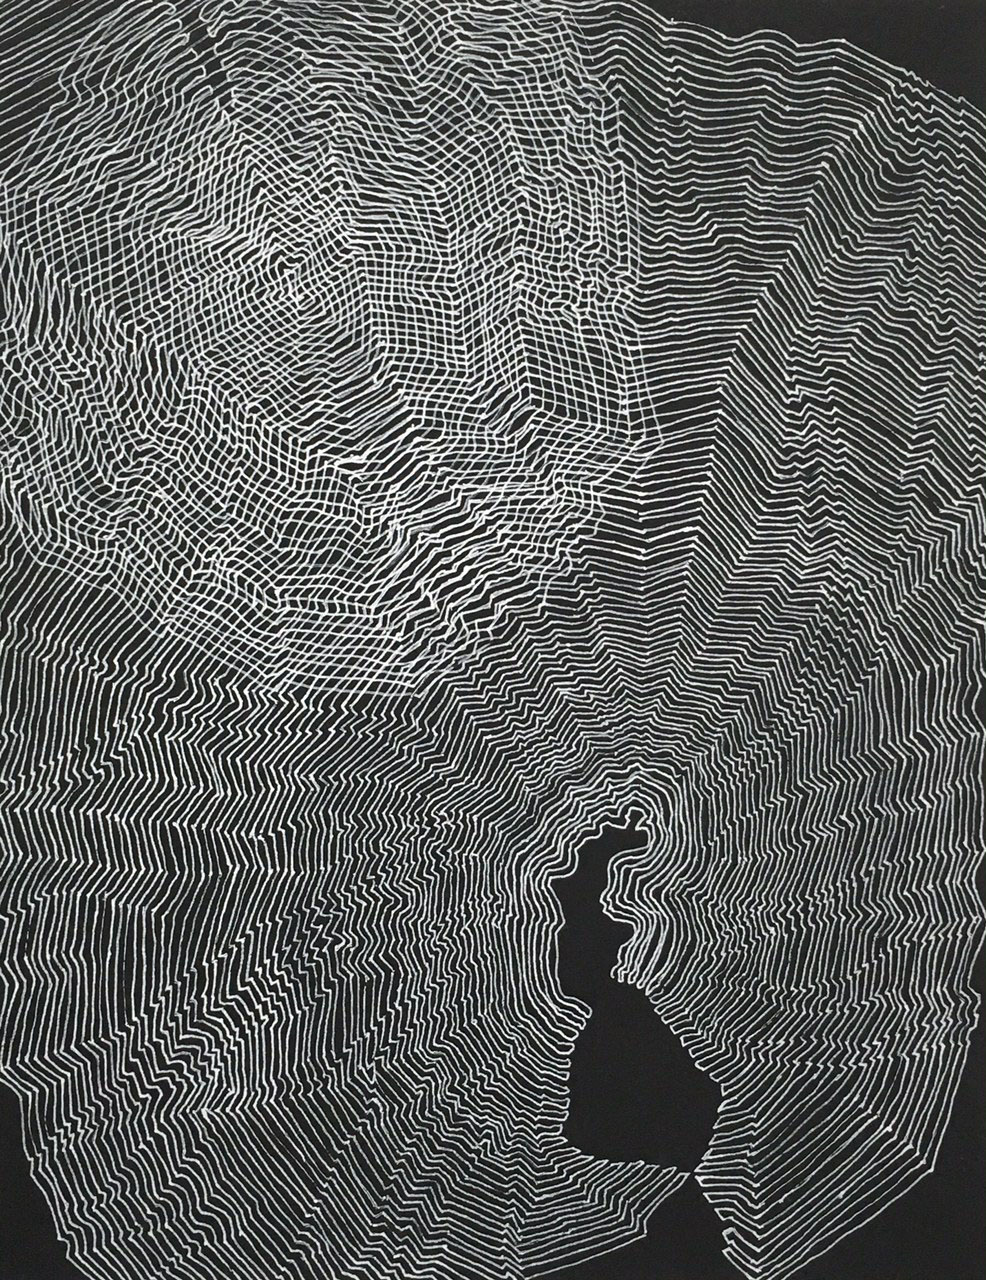 Nightlines 1     12 x 9 inches   Ink on black cardboard   2015